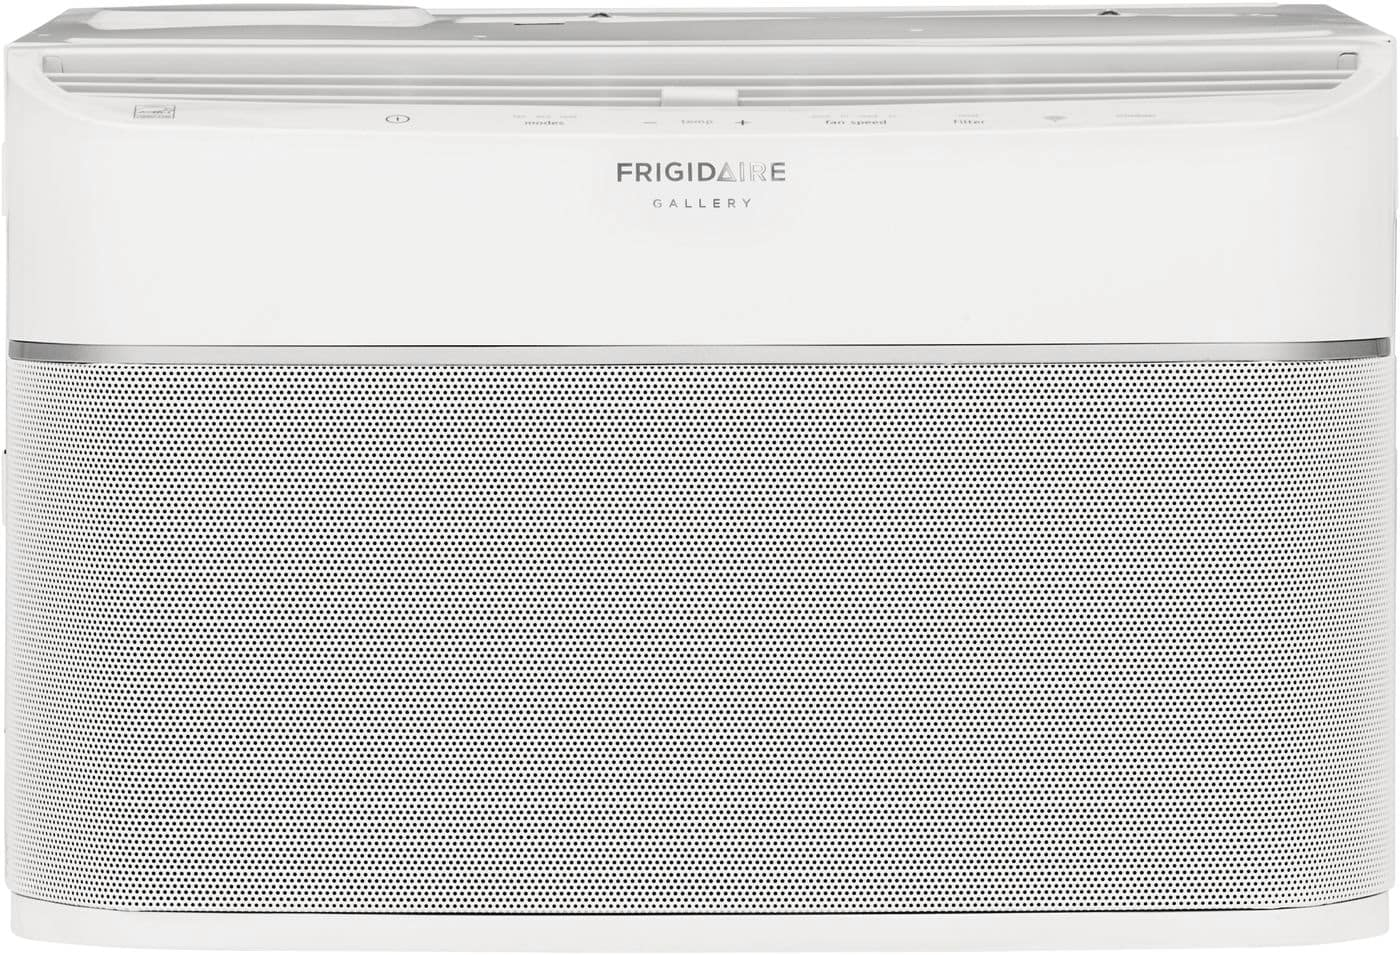 Frigidaire 8,000 BTU Cool Connect™ Smart Room Air Conditioner with Wifi Control